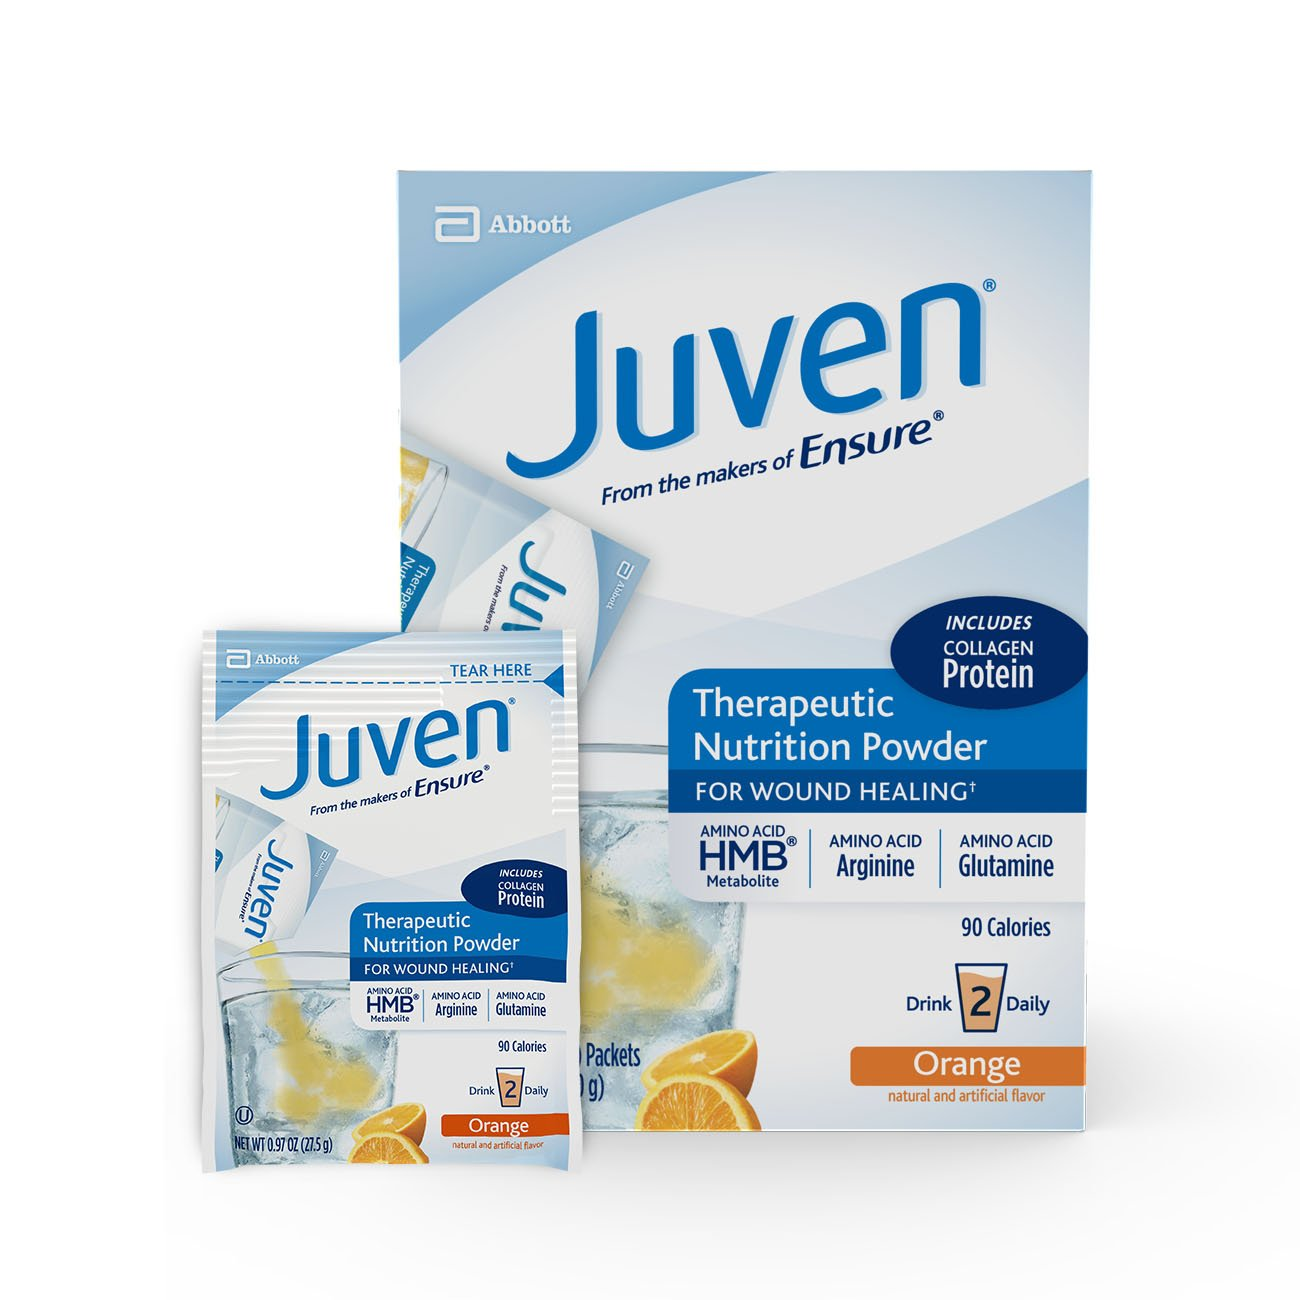 Juven Therapeutic Nutrition Drink Mix Powder for Wound Healing, Includes Collagen Protein, Orange, 48 count